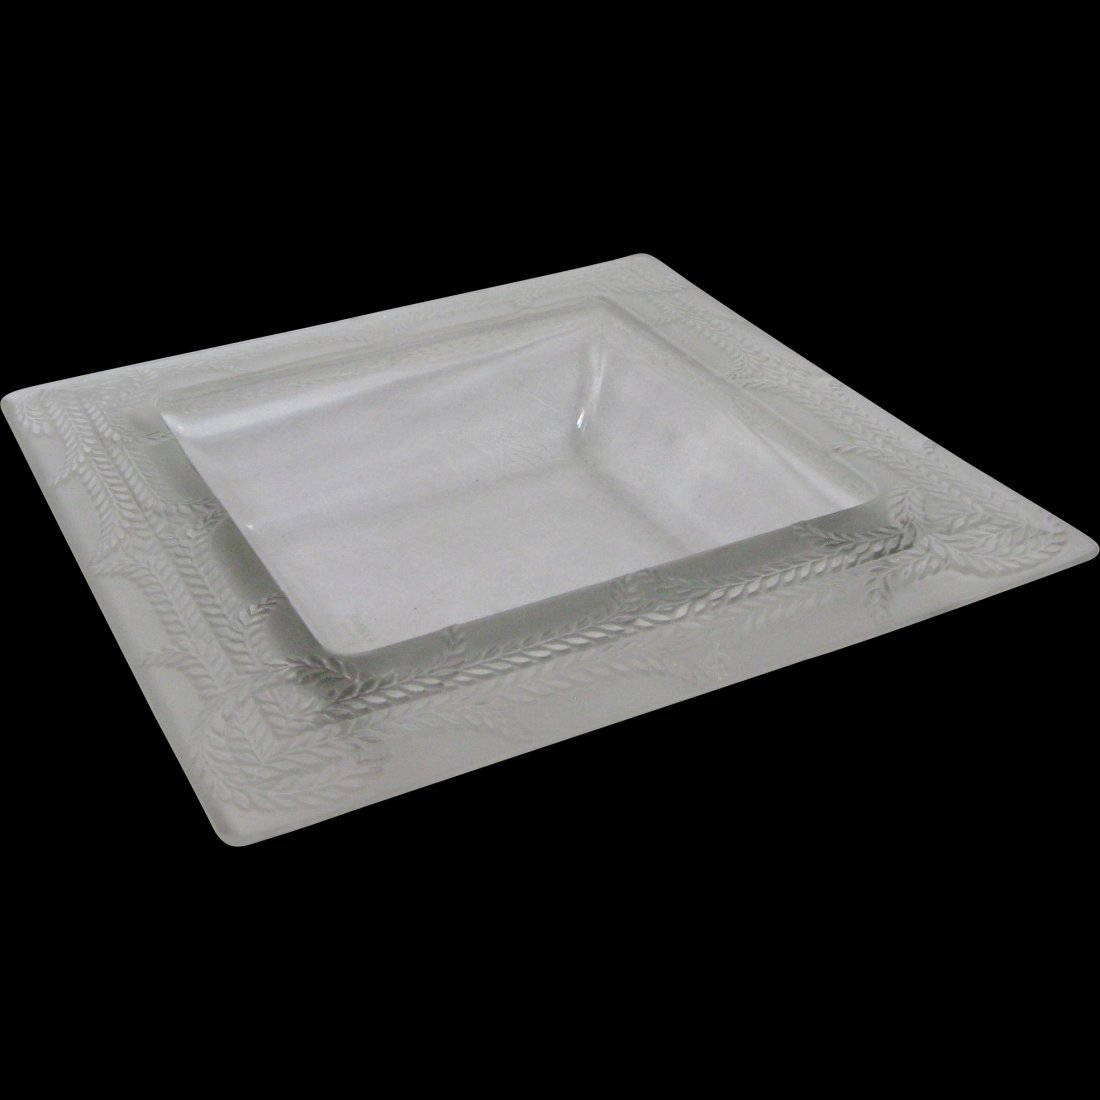 Rene Lalique Rameaux Coupe Carre Frosted Square Bowl